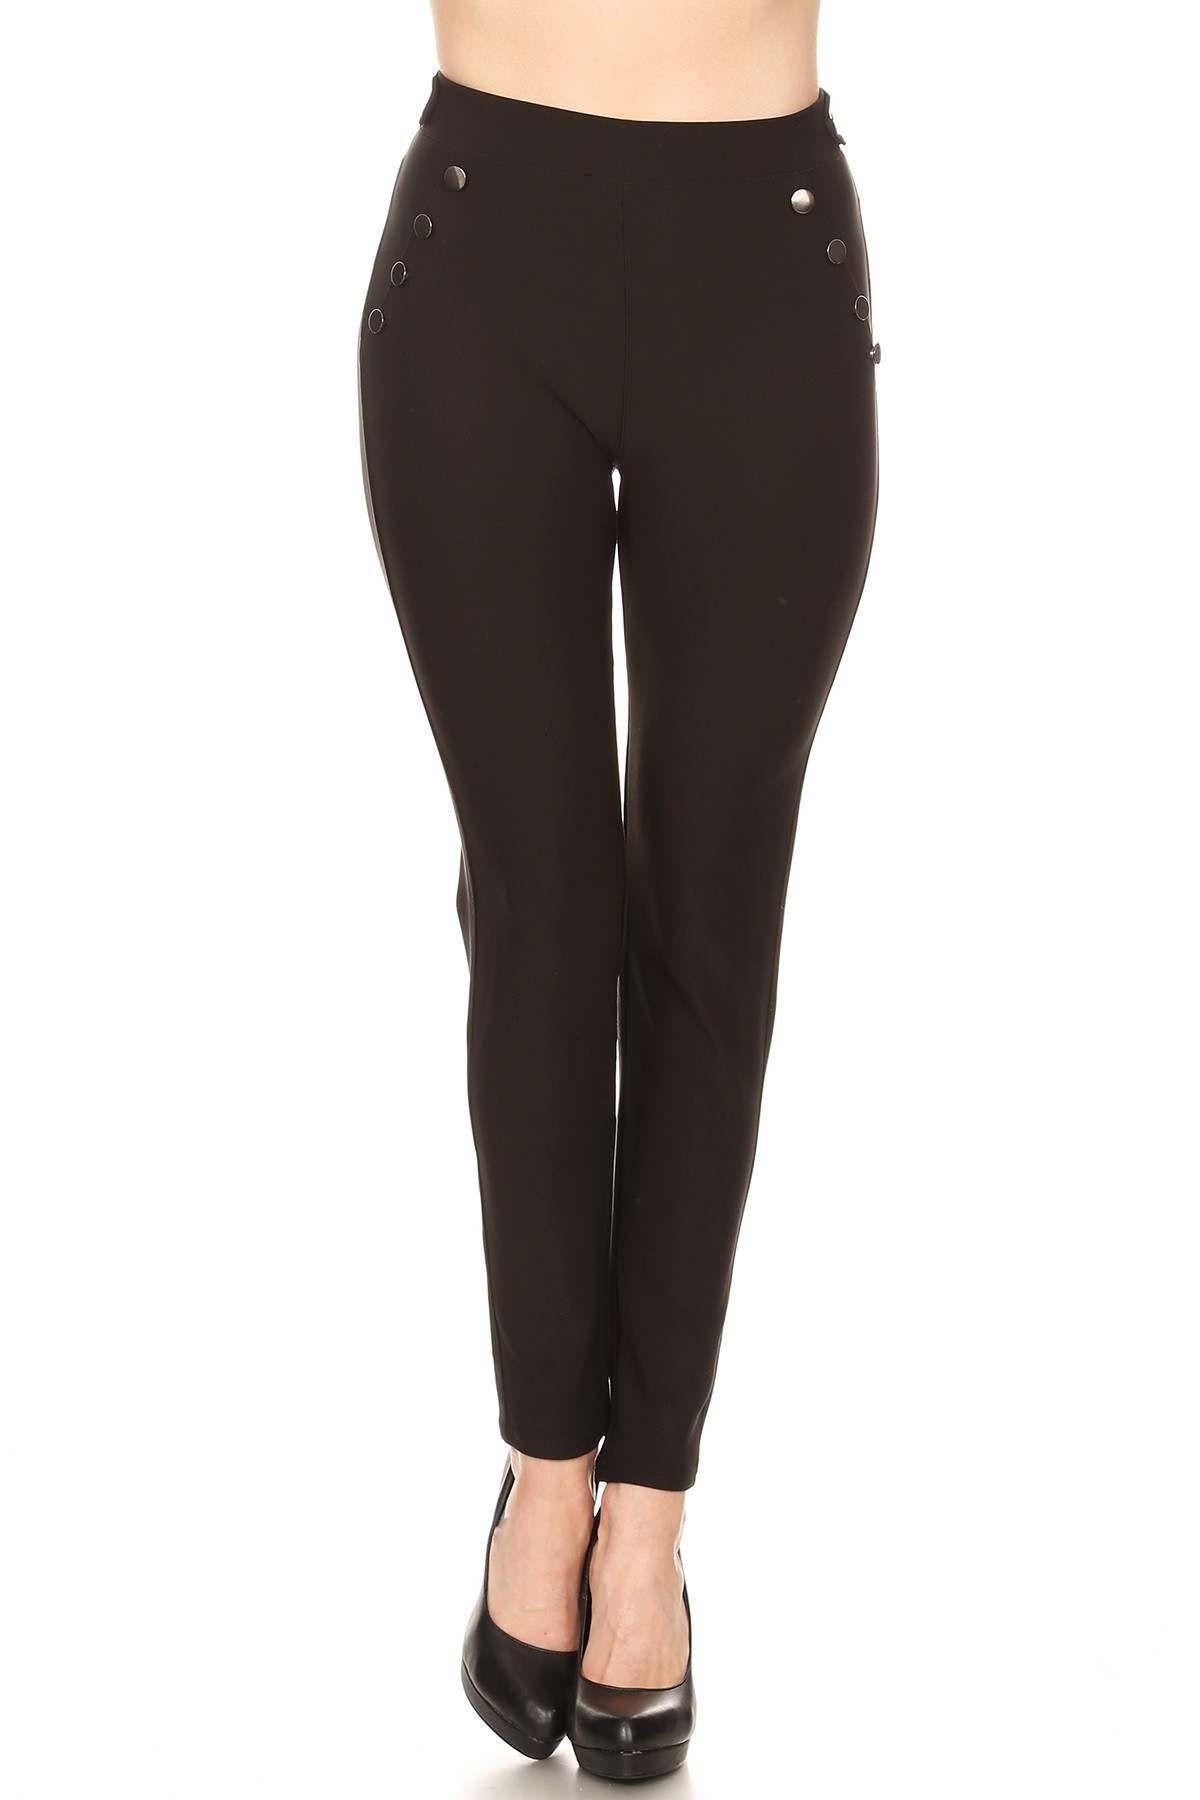 Mid Waist Gunmetal Colored Flat Buttons Detailed Pant Leggings